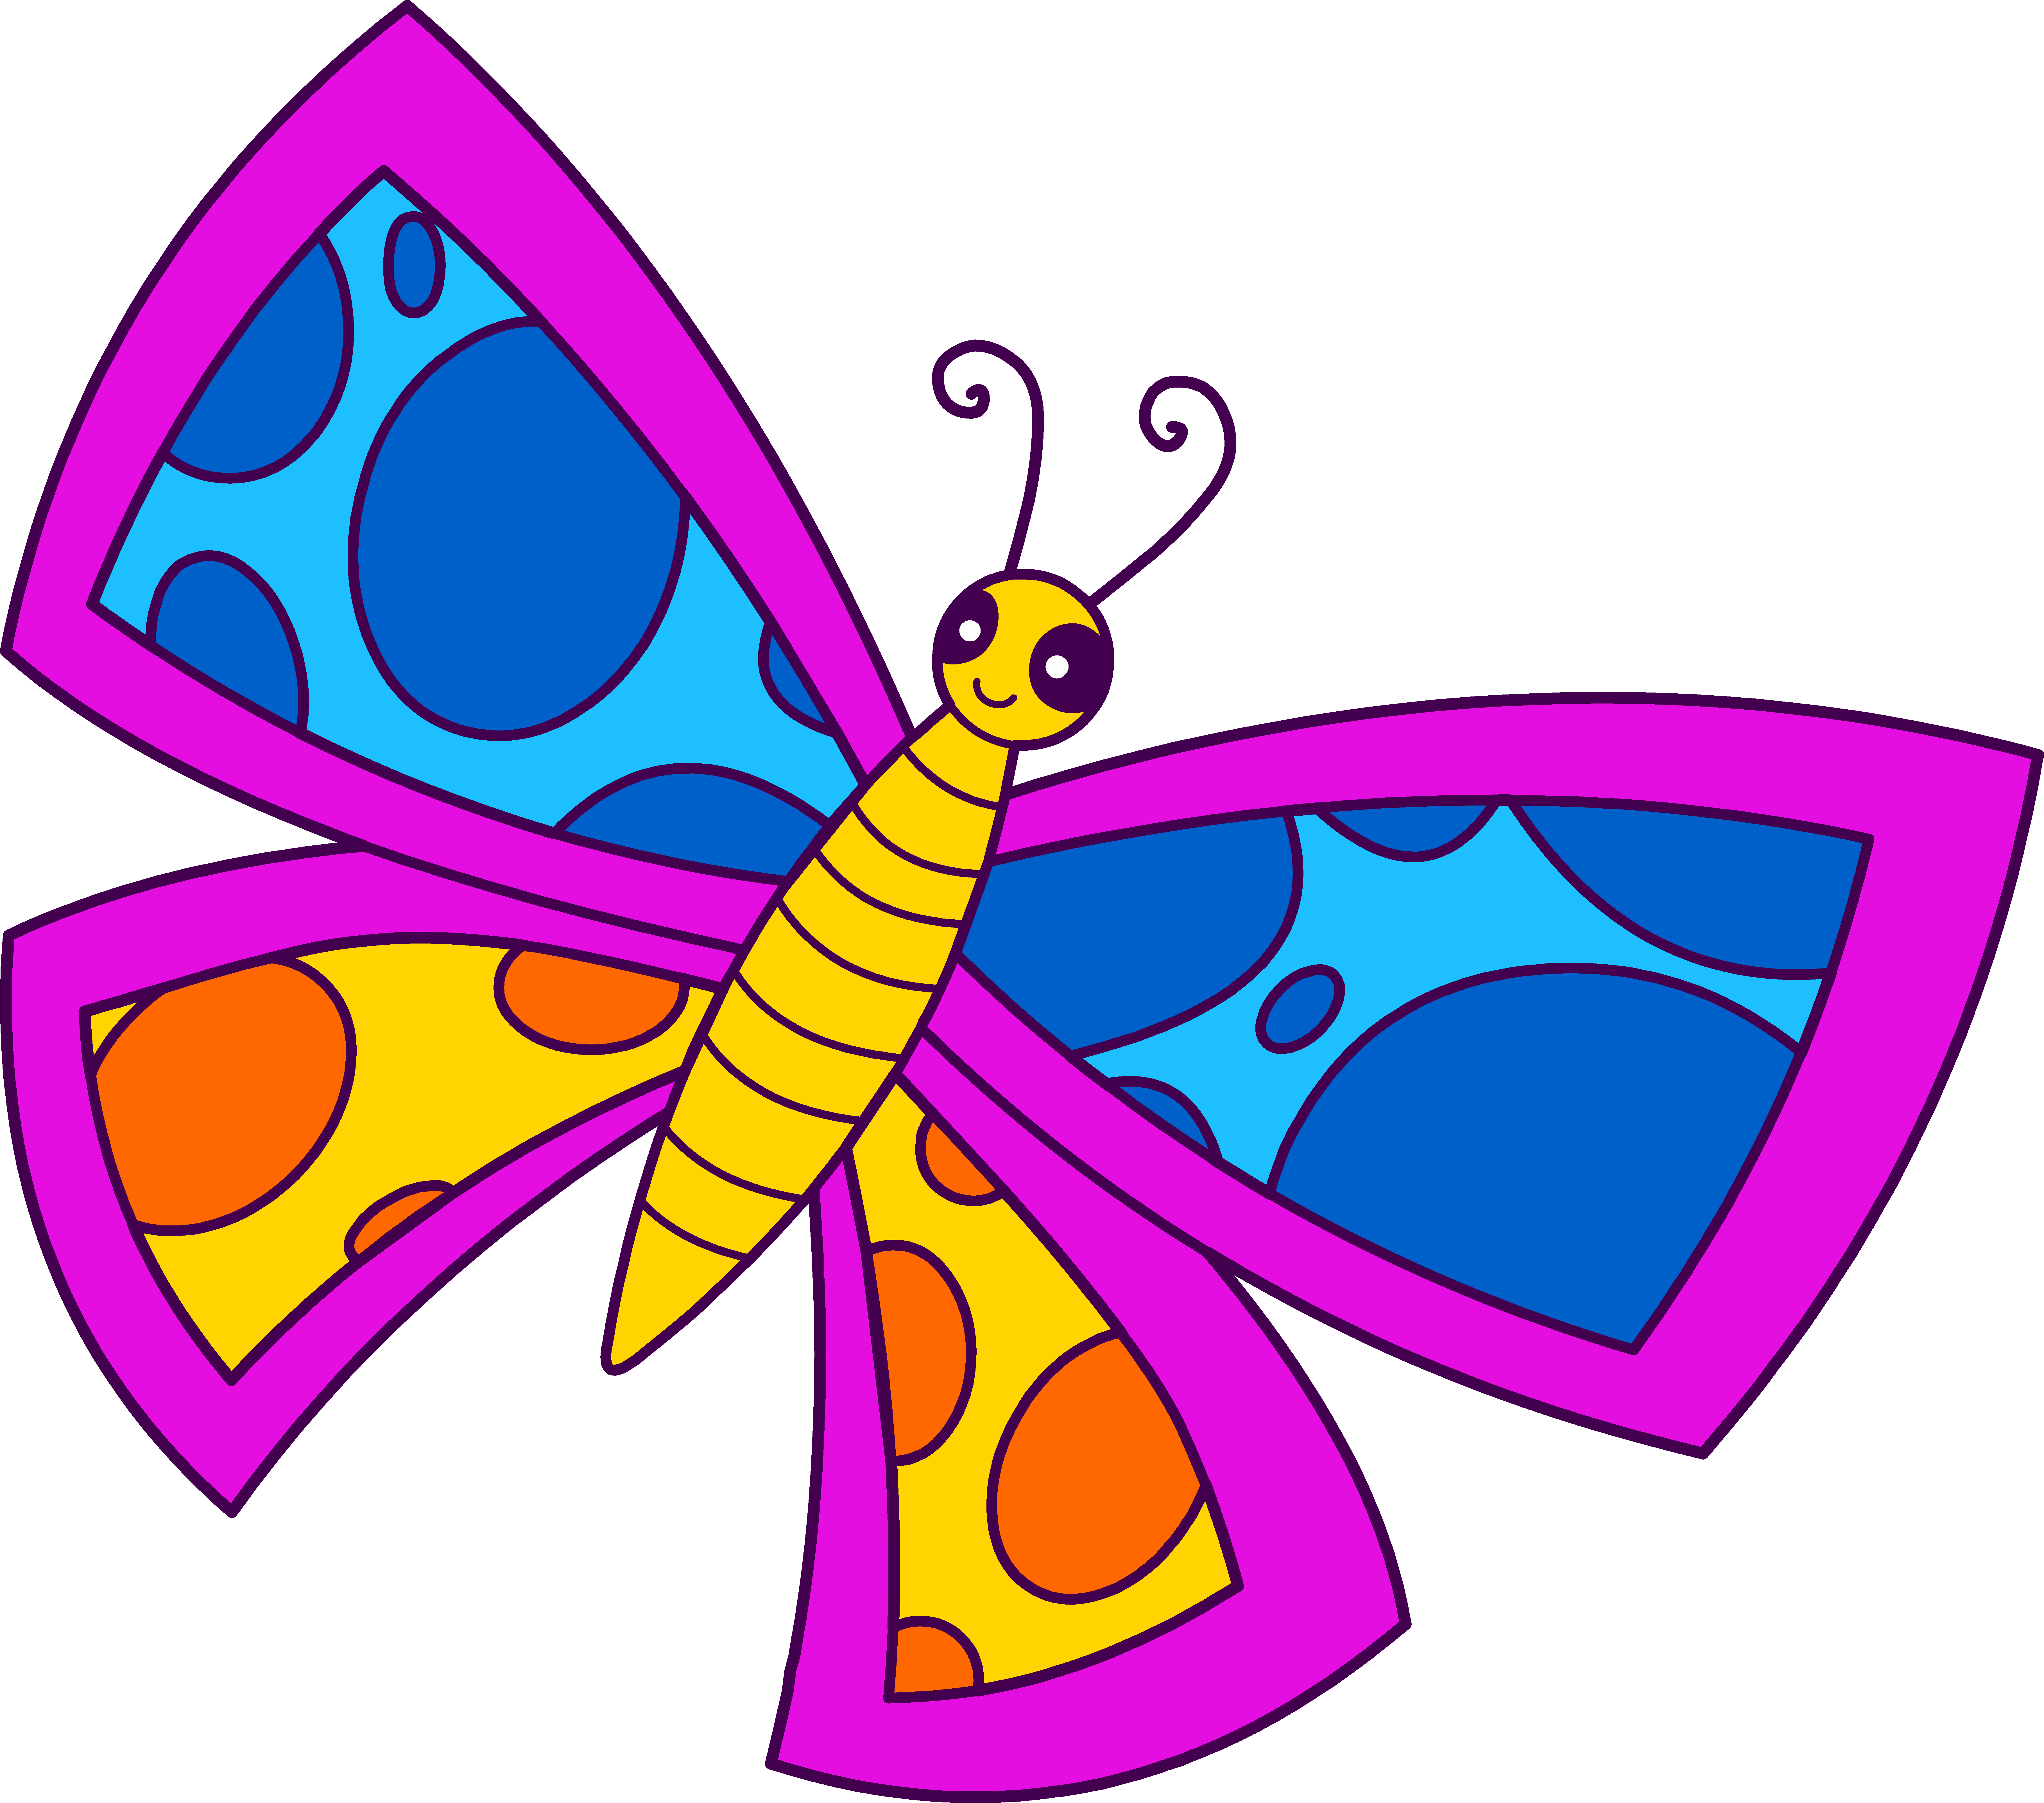 Glitch clipart colorful butterfly #8